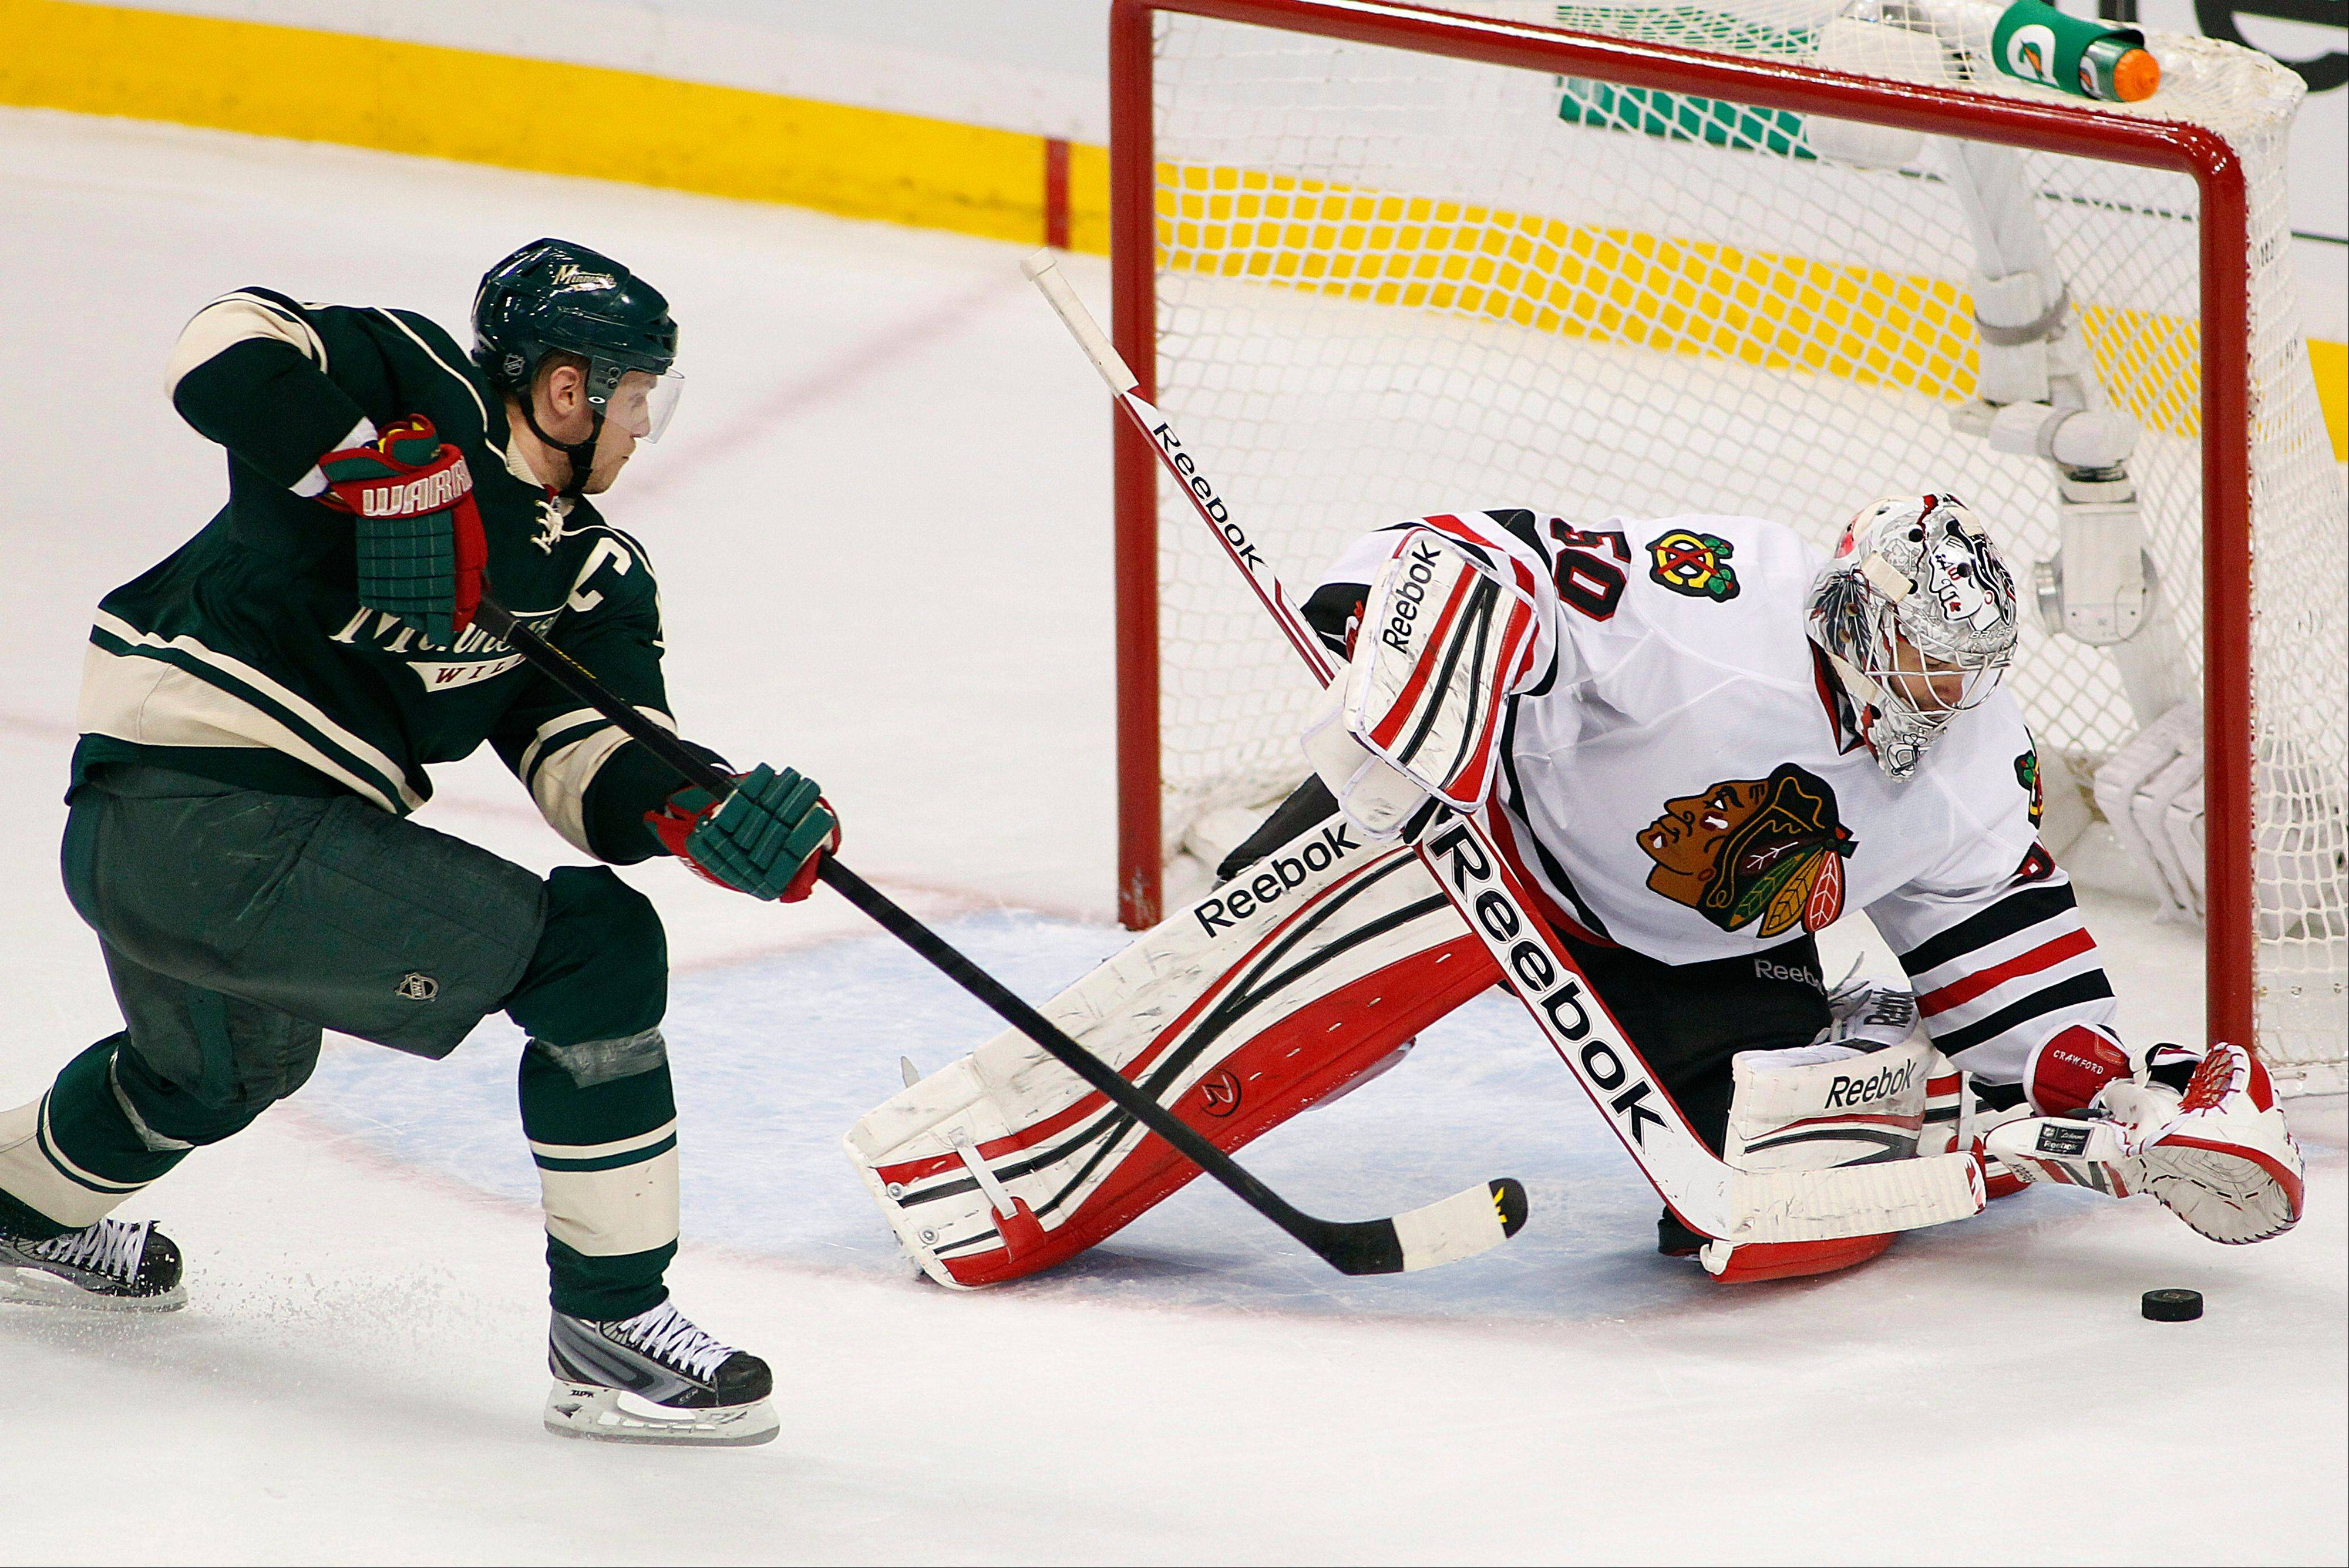 Minnesota Wild's Mikko Koivu has his shot stopped by Chicago Blackhawks goalie Corey Crawford in the third period. The Wild won 3-2.